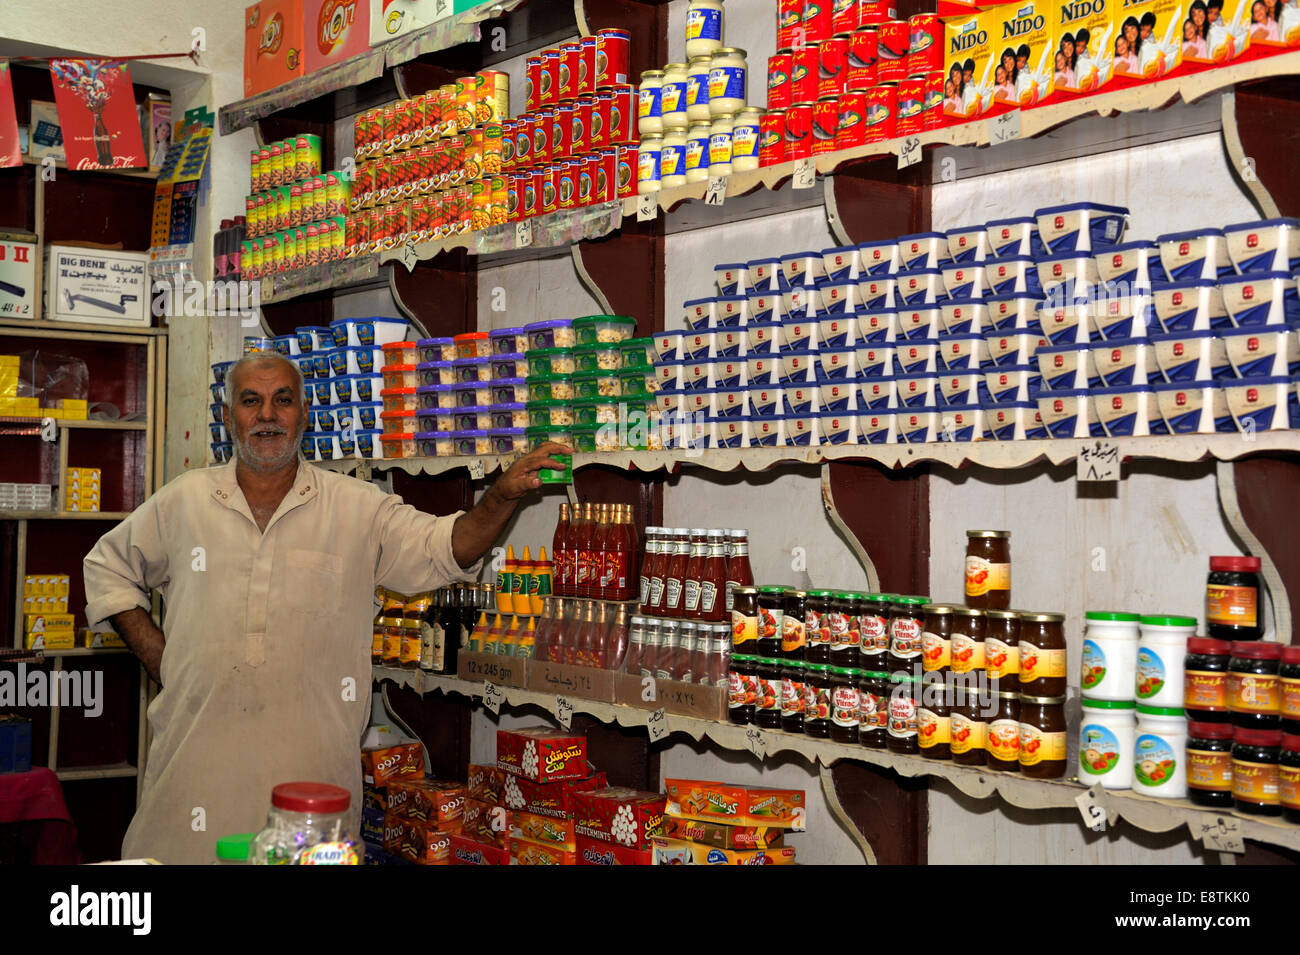 Egyptian shop keeper standing inside his small food shop, Nuweiba, Egypt - Stock Image